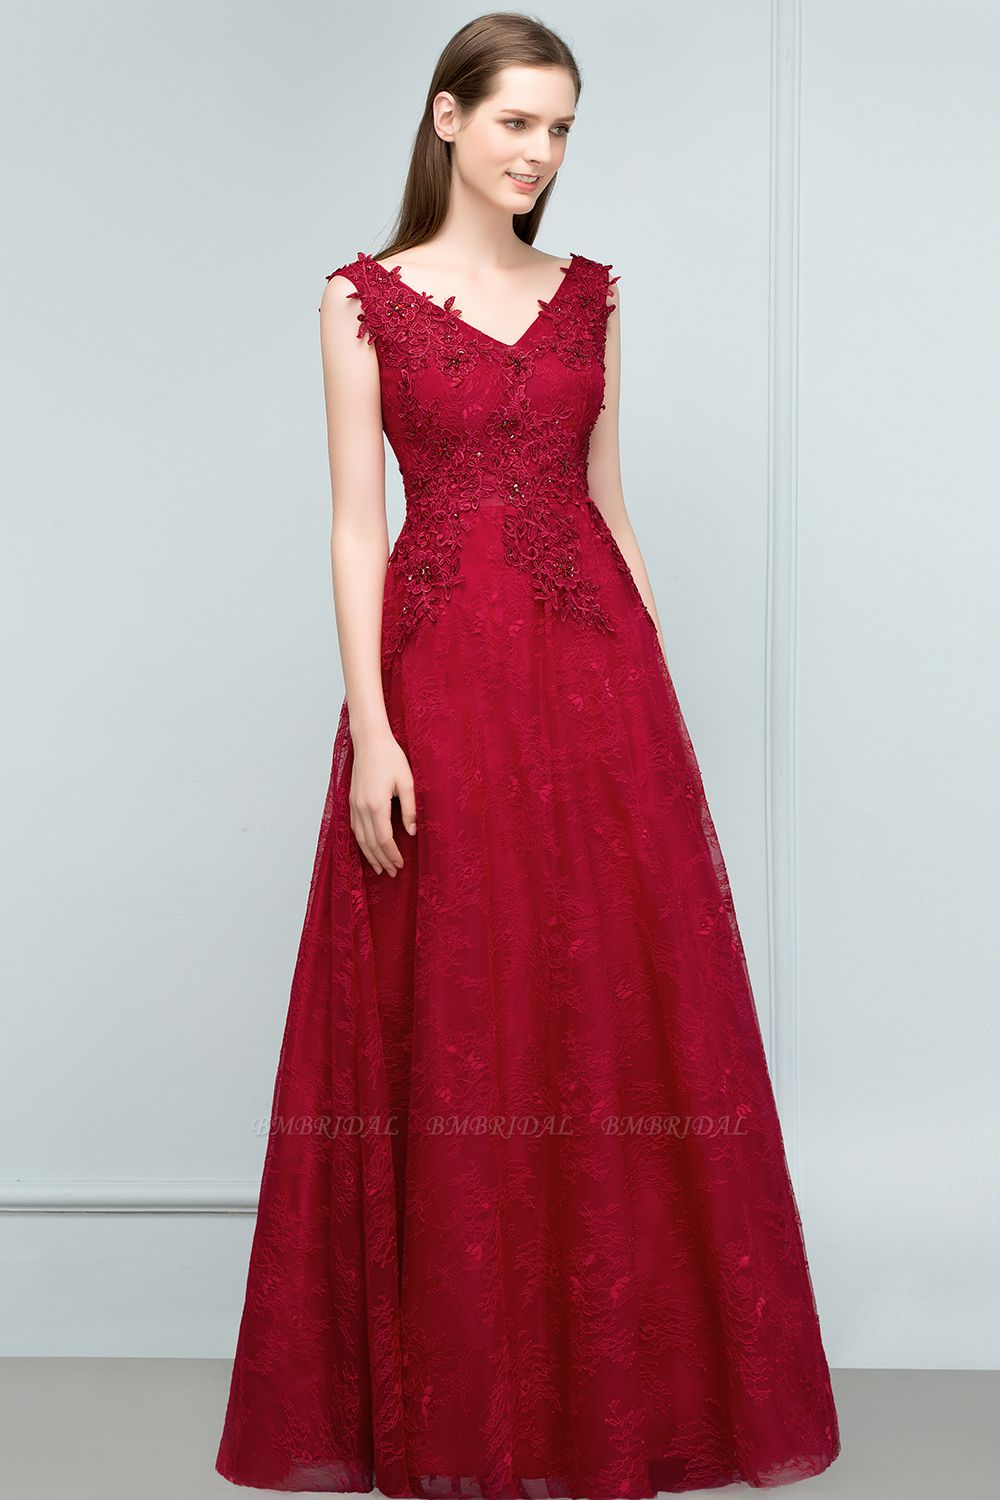 BMbridal Burgundy V-Neck Lace Prom Dress Long Evening Party Gowns With Appliques